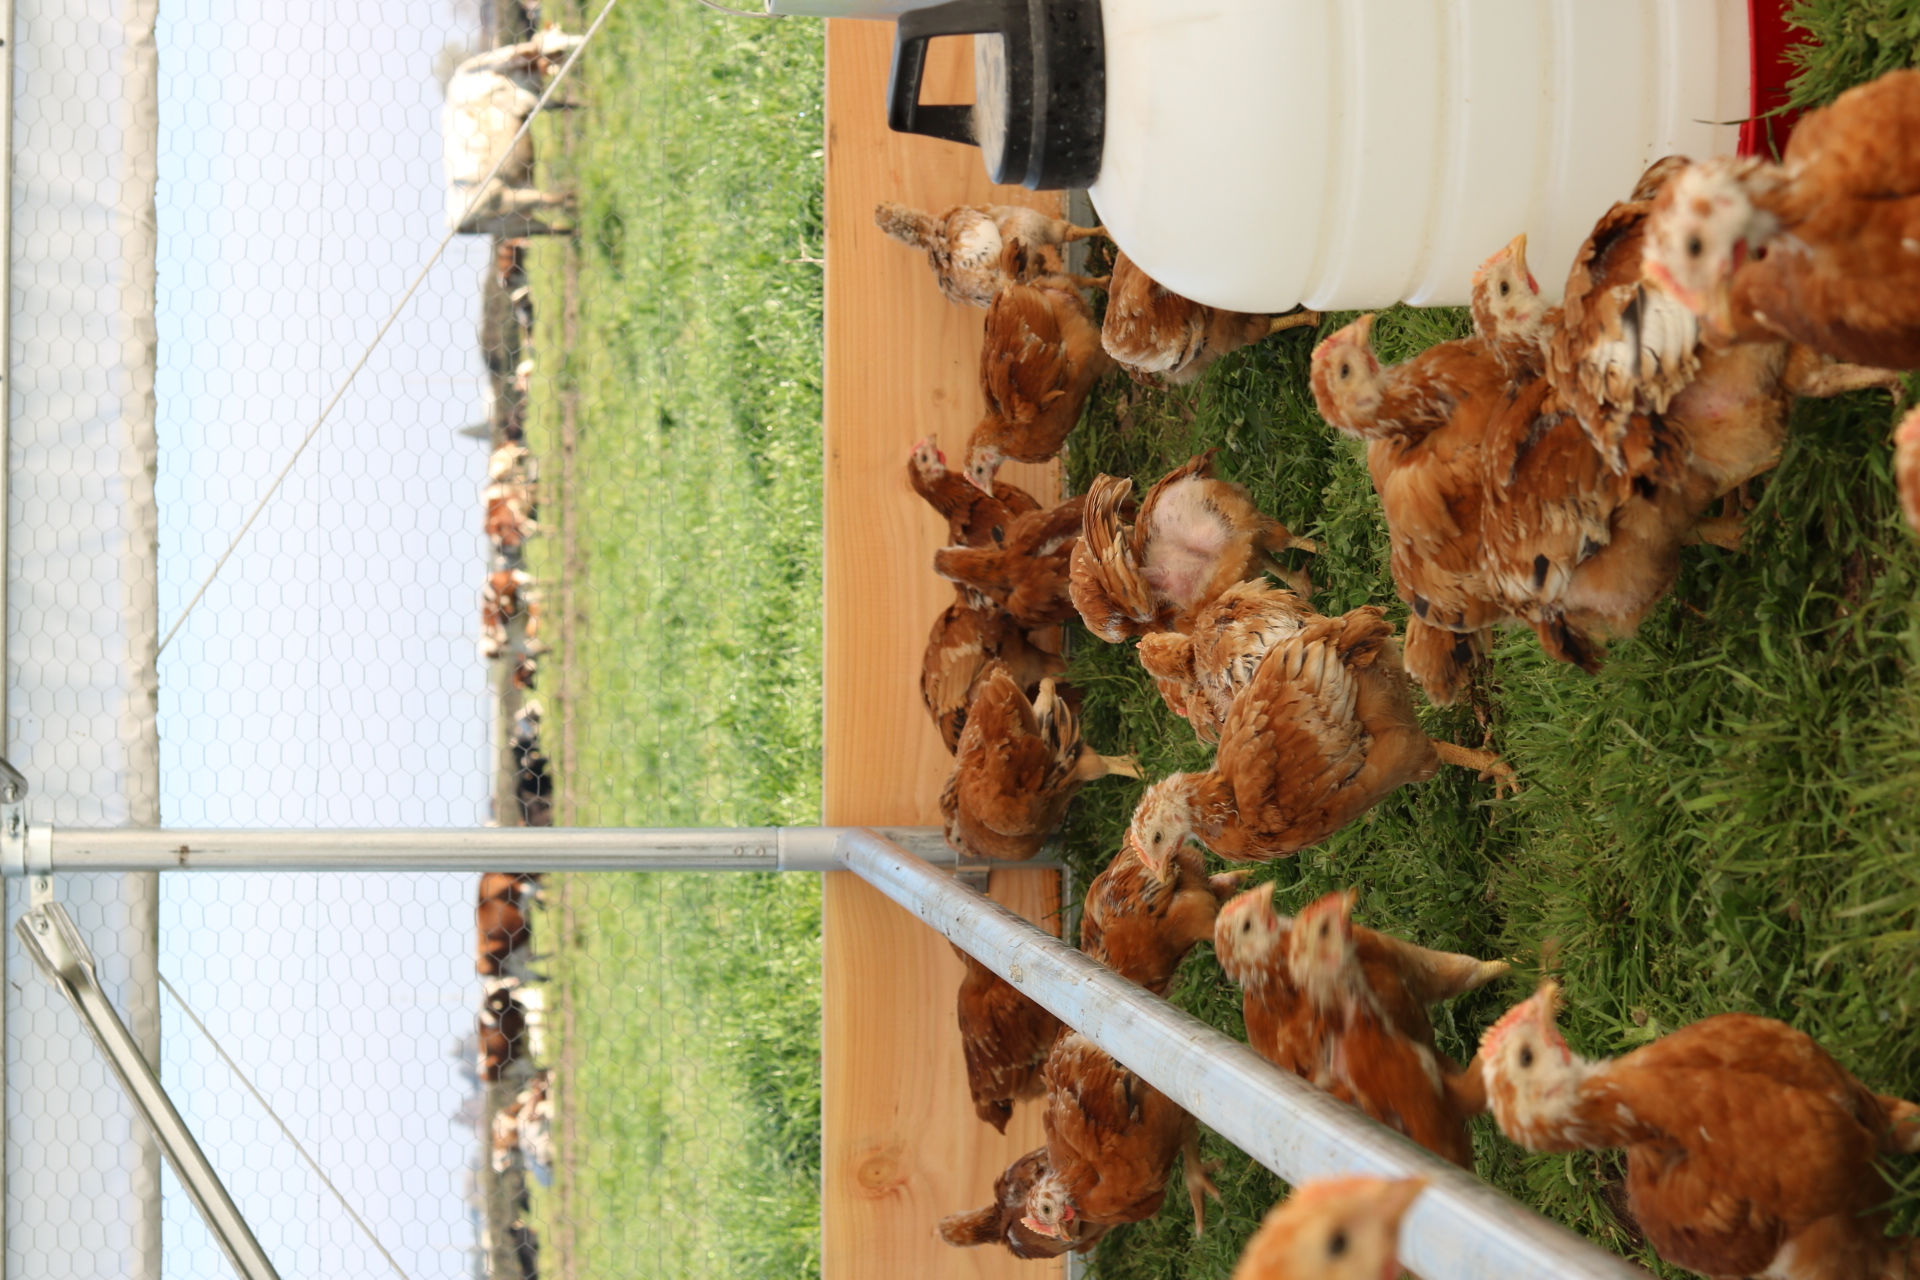 New Batches of Chicks